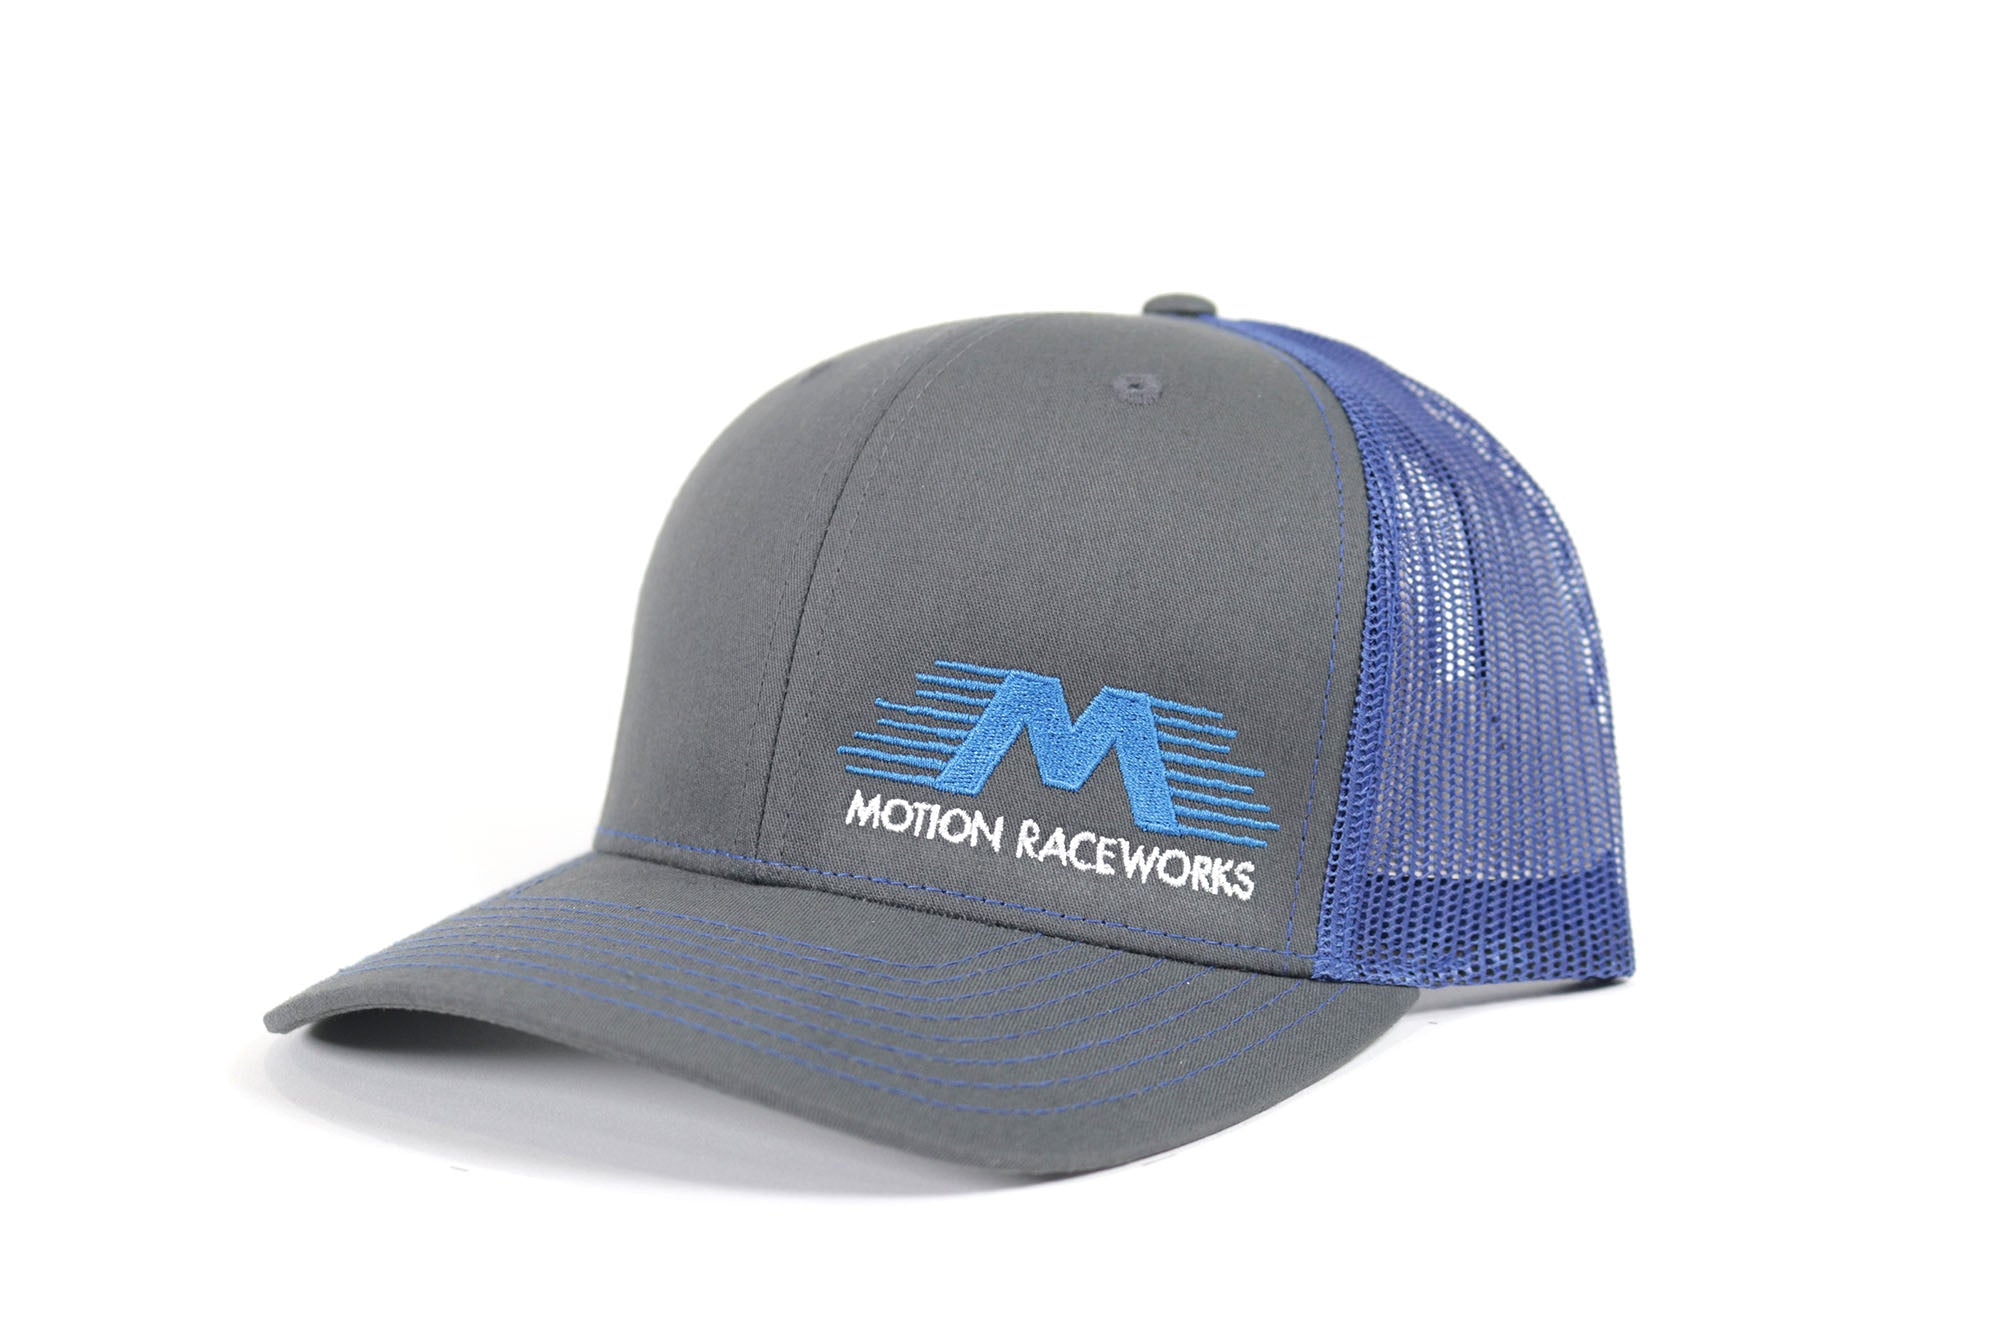 Blue/Grey Motion Raceworks Trucker Snapback Hat (Mesh Back)-Motion Raceworks-Motion Raceworks